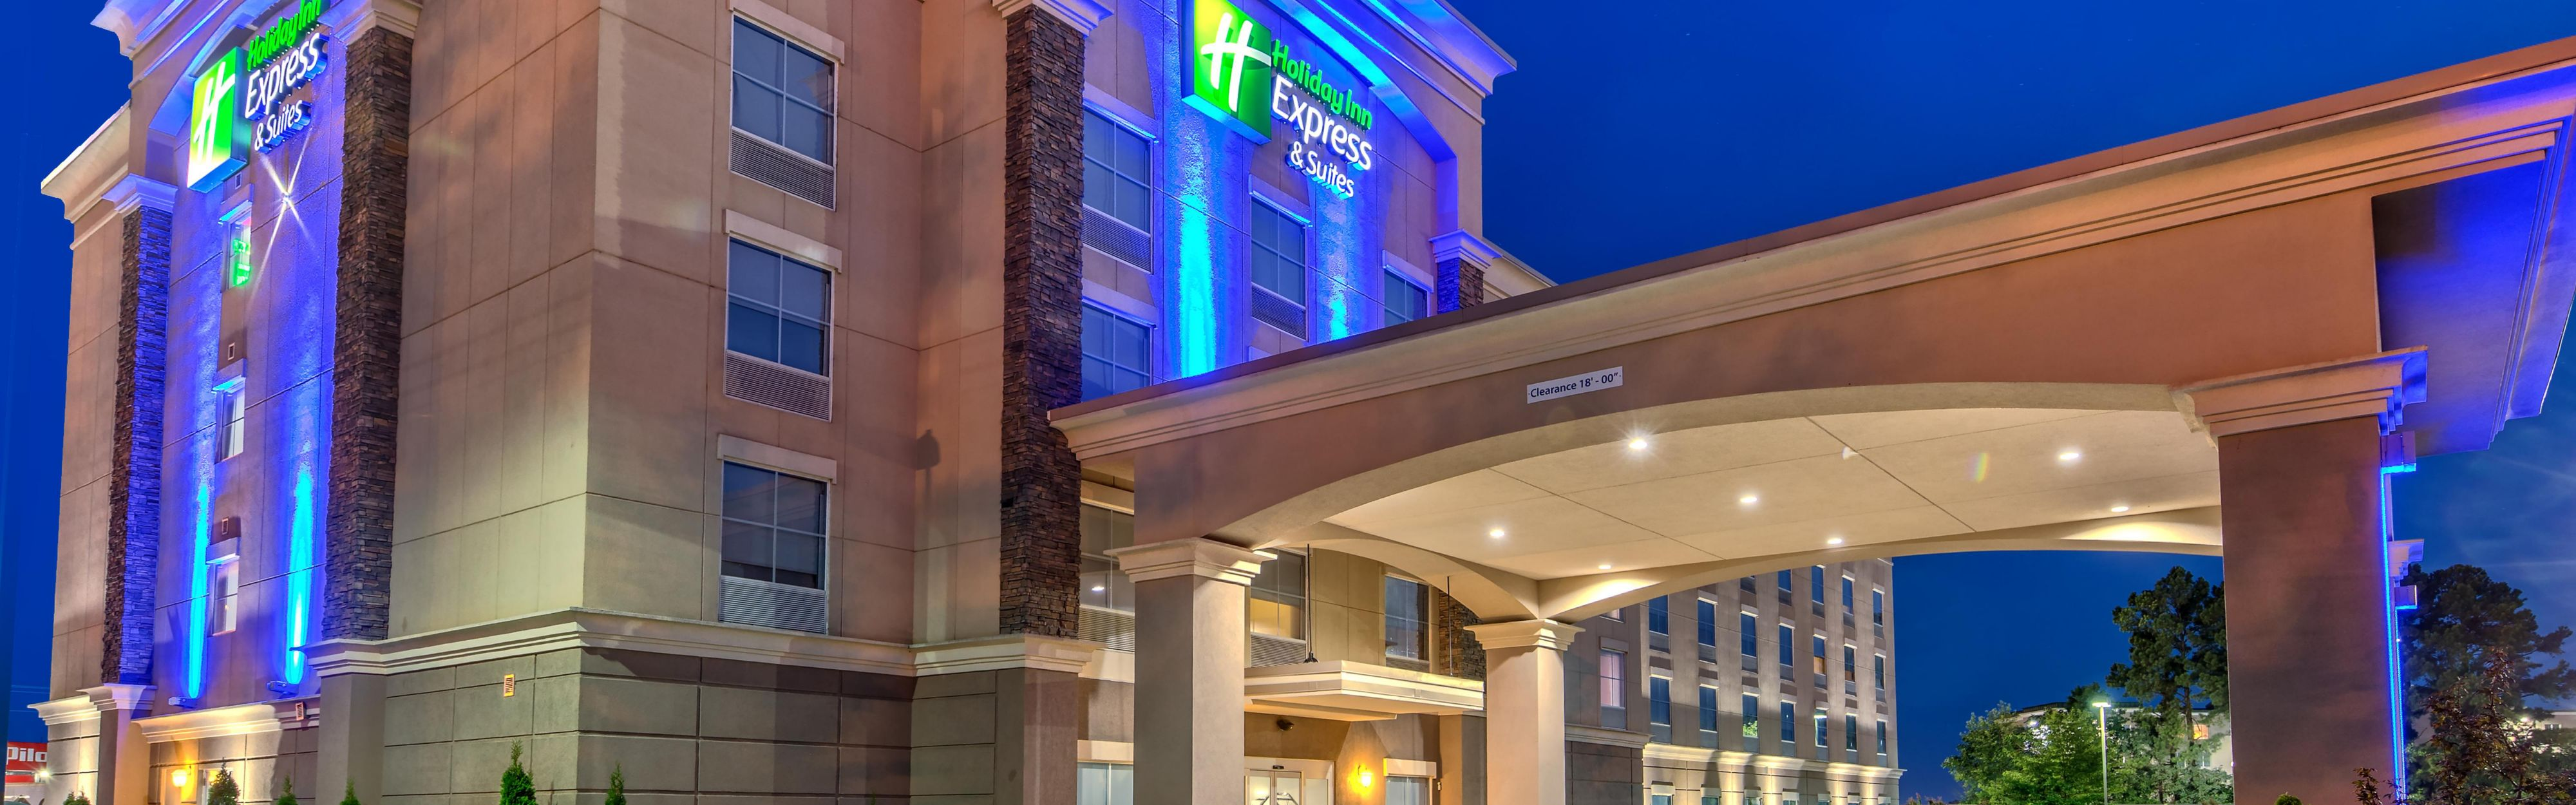 Holiday Inn Express & Suites Cookeville image 0